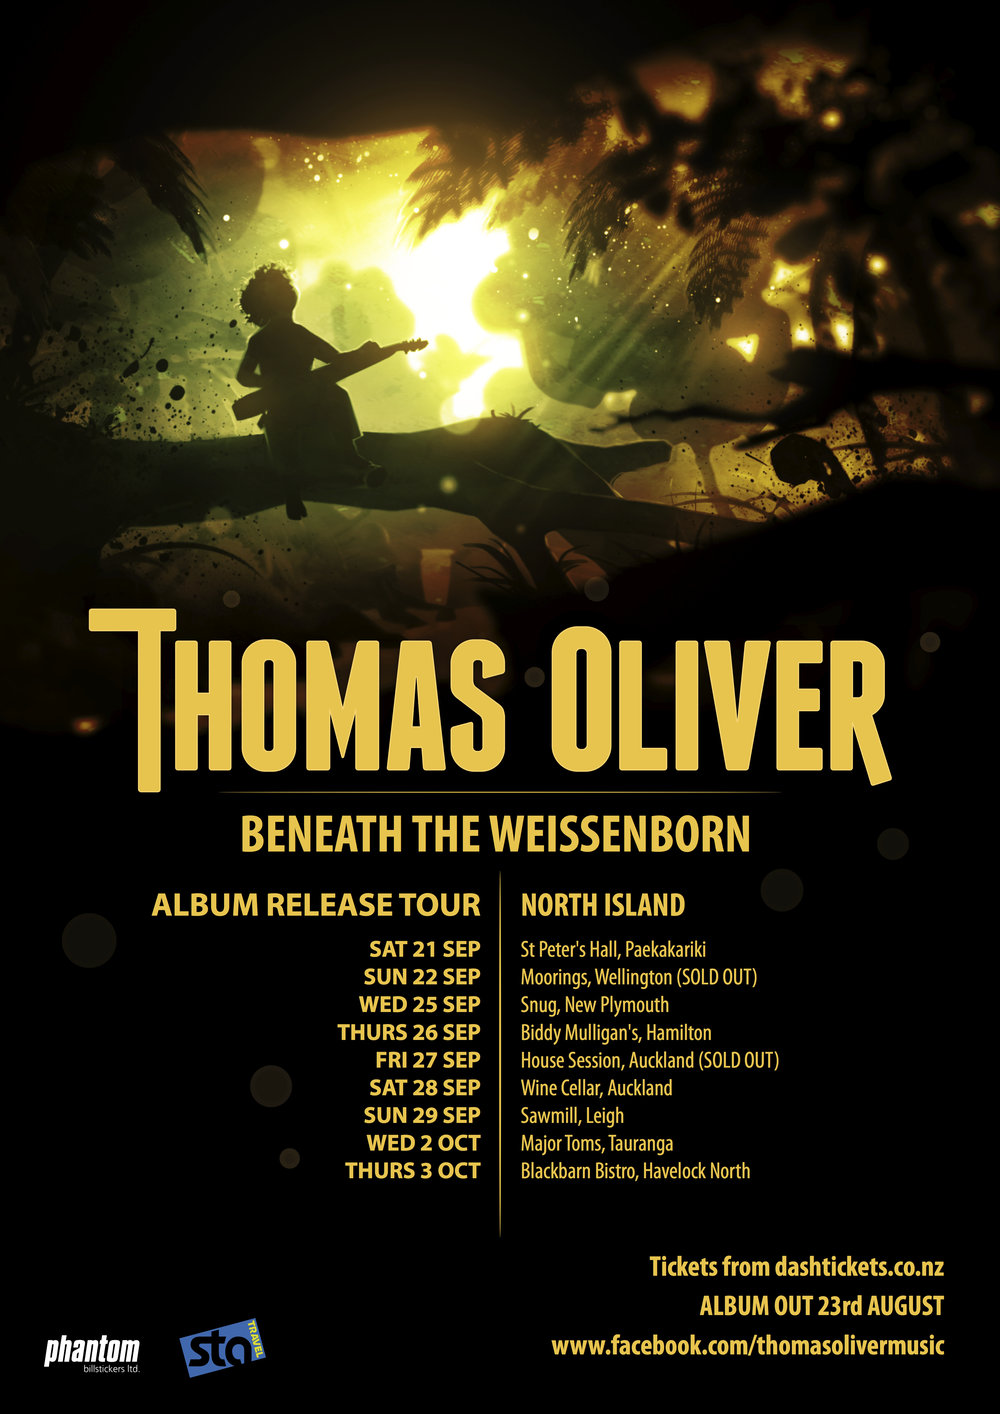 Thomas Oliver - Beneath The Weissenborn Poster.jpg